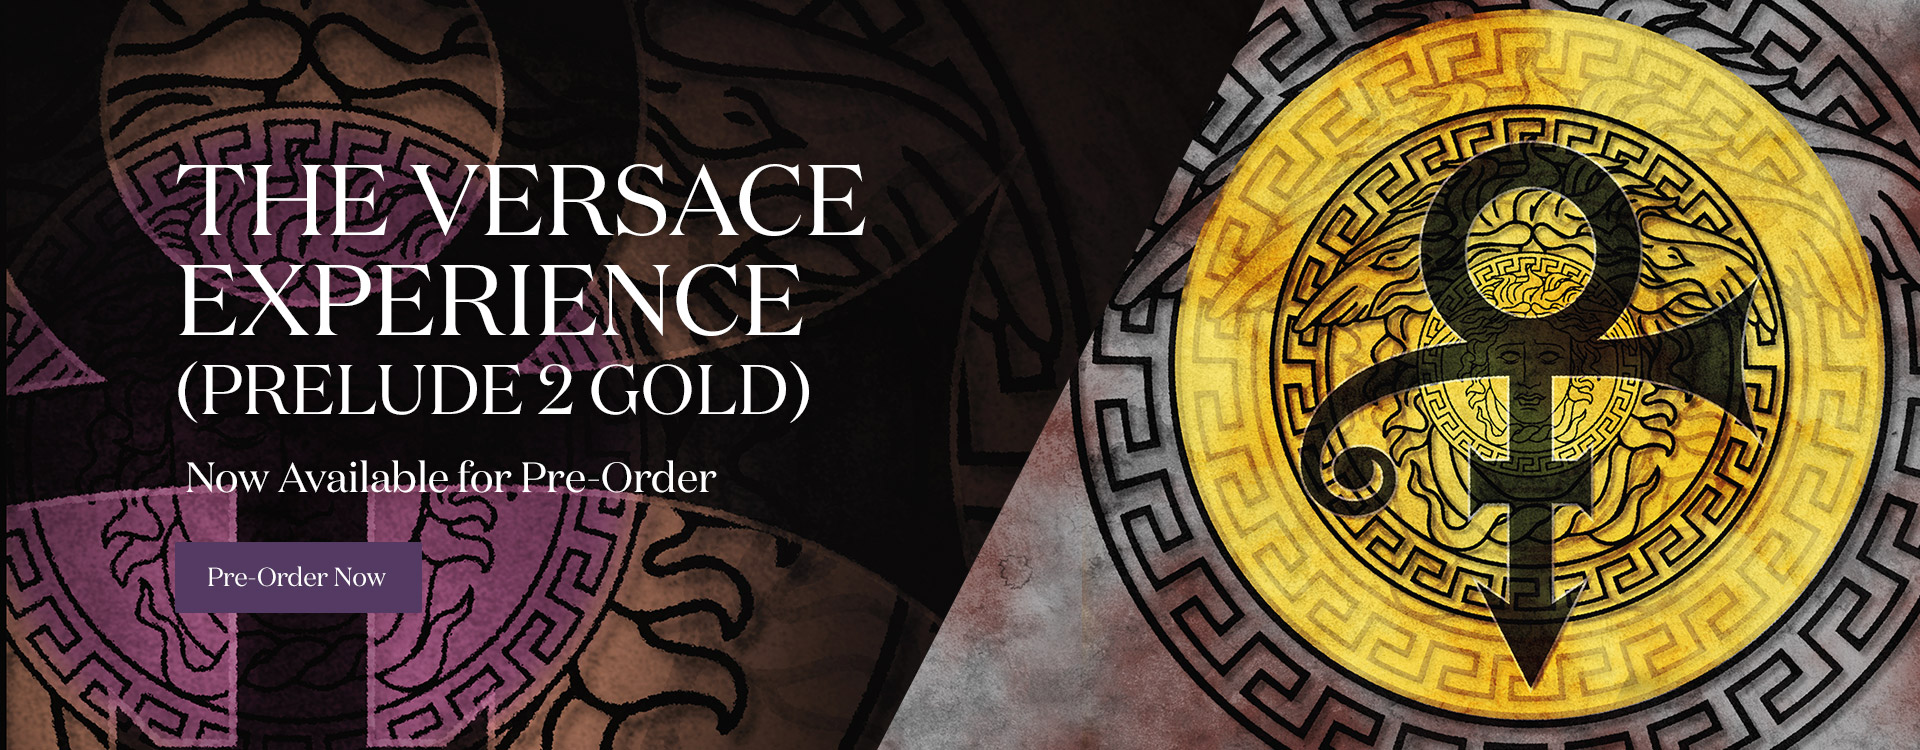 The VERSACE Experience